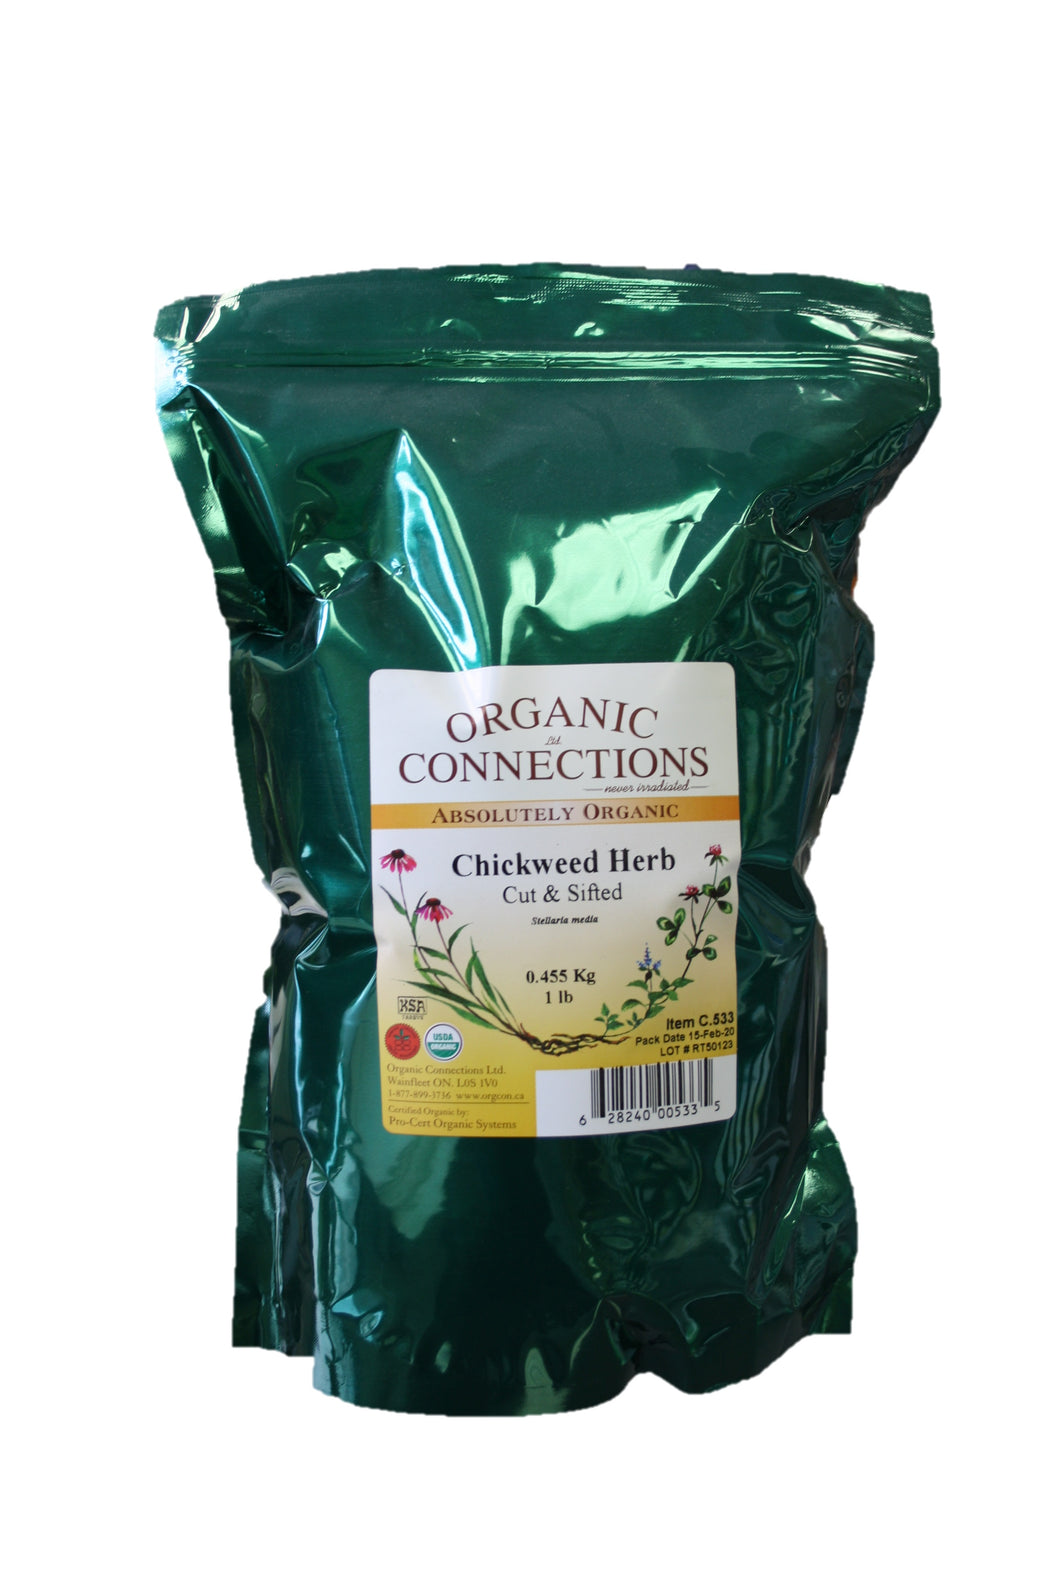 Organic Connections, Chickweed Herb, Cut and Sifted, Organic (1 lb)